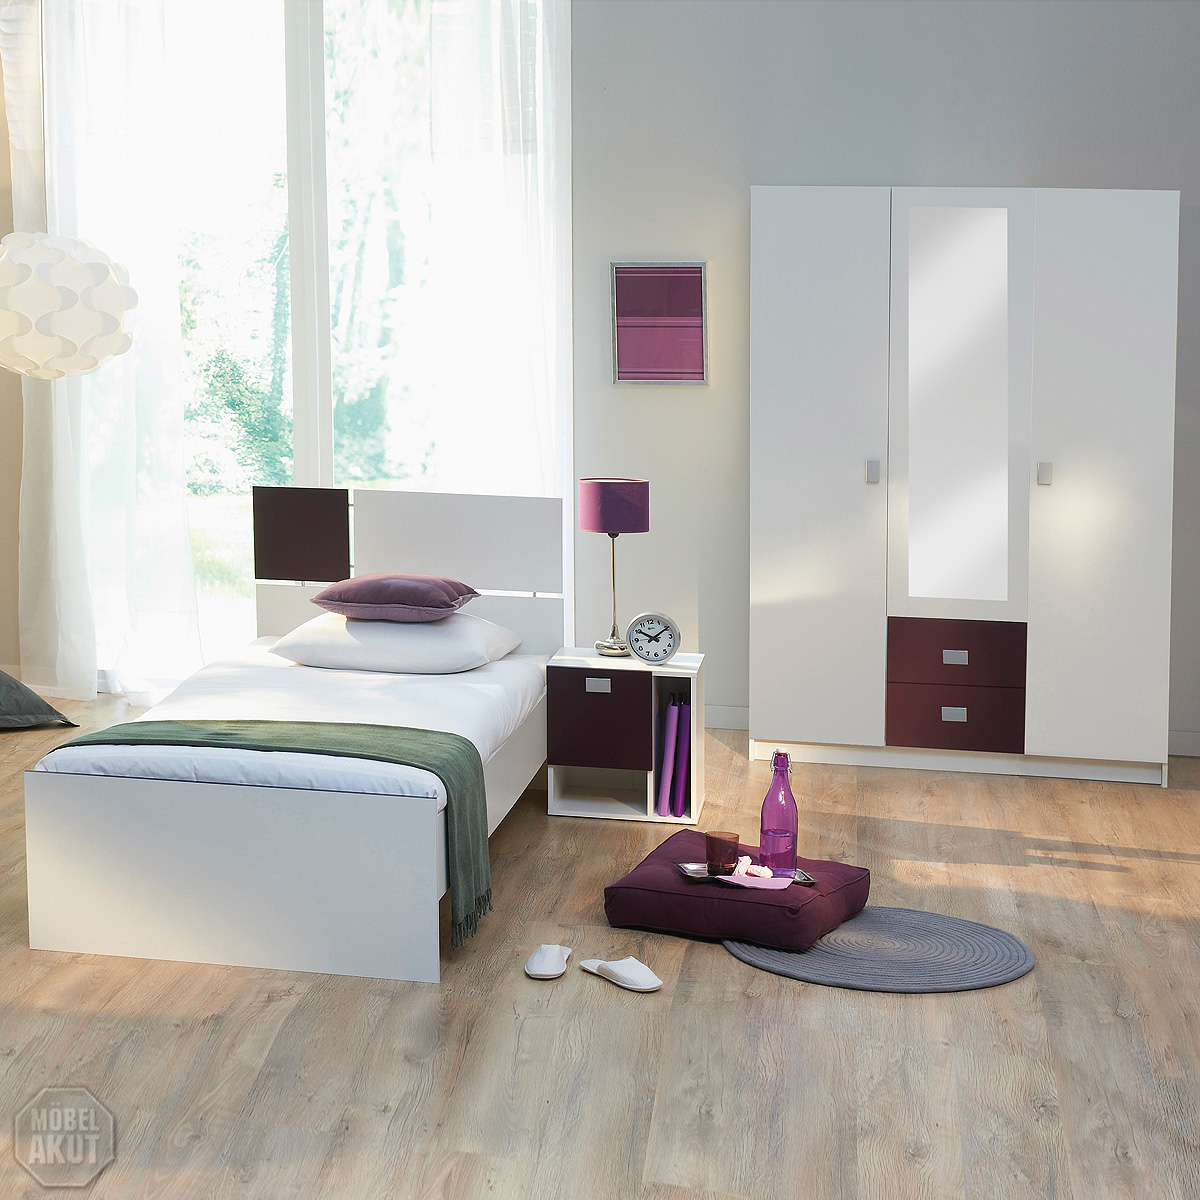 3 tlg jugendzimmer riba kinderzimmer in wei lila ebay. Black Bedroom Furniture Sets. Home Design Ideas